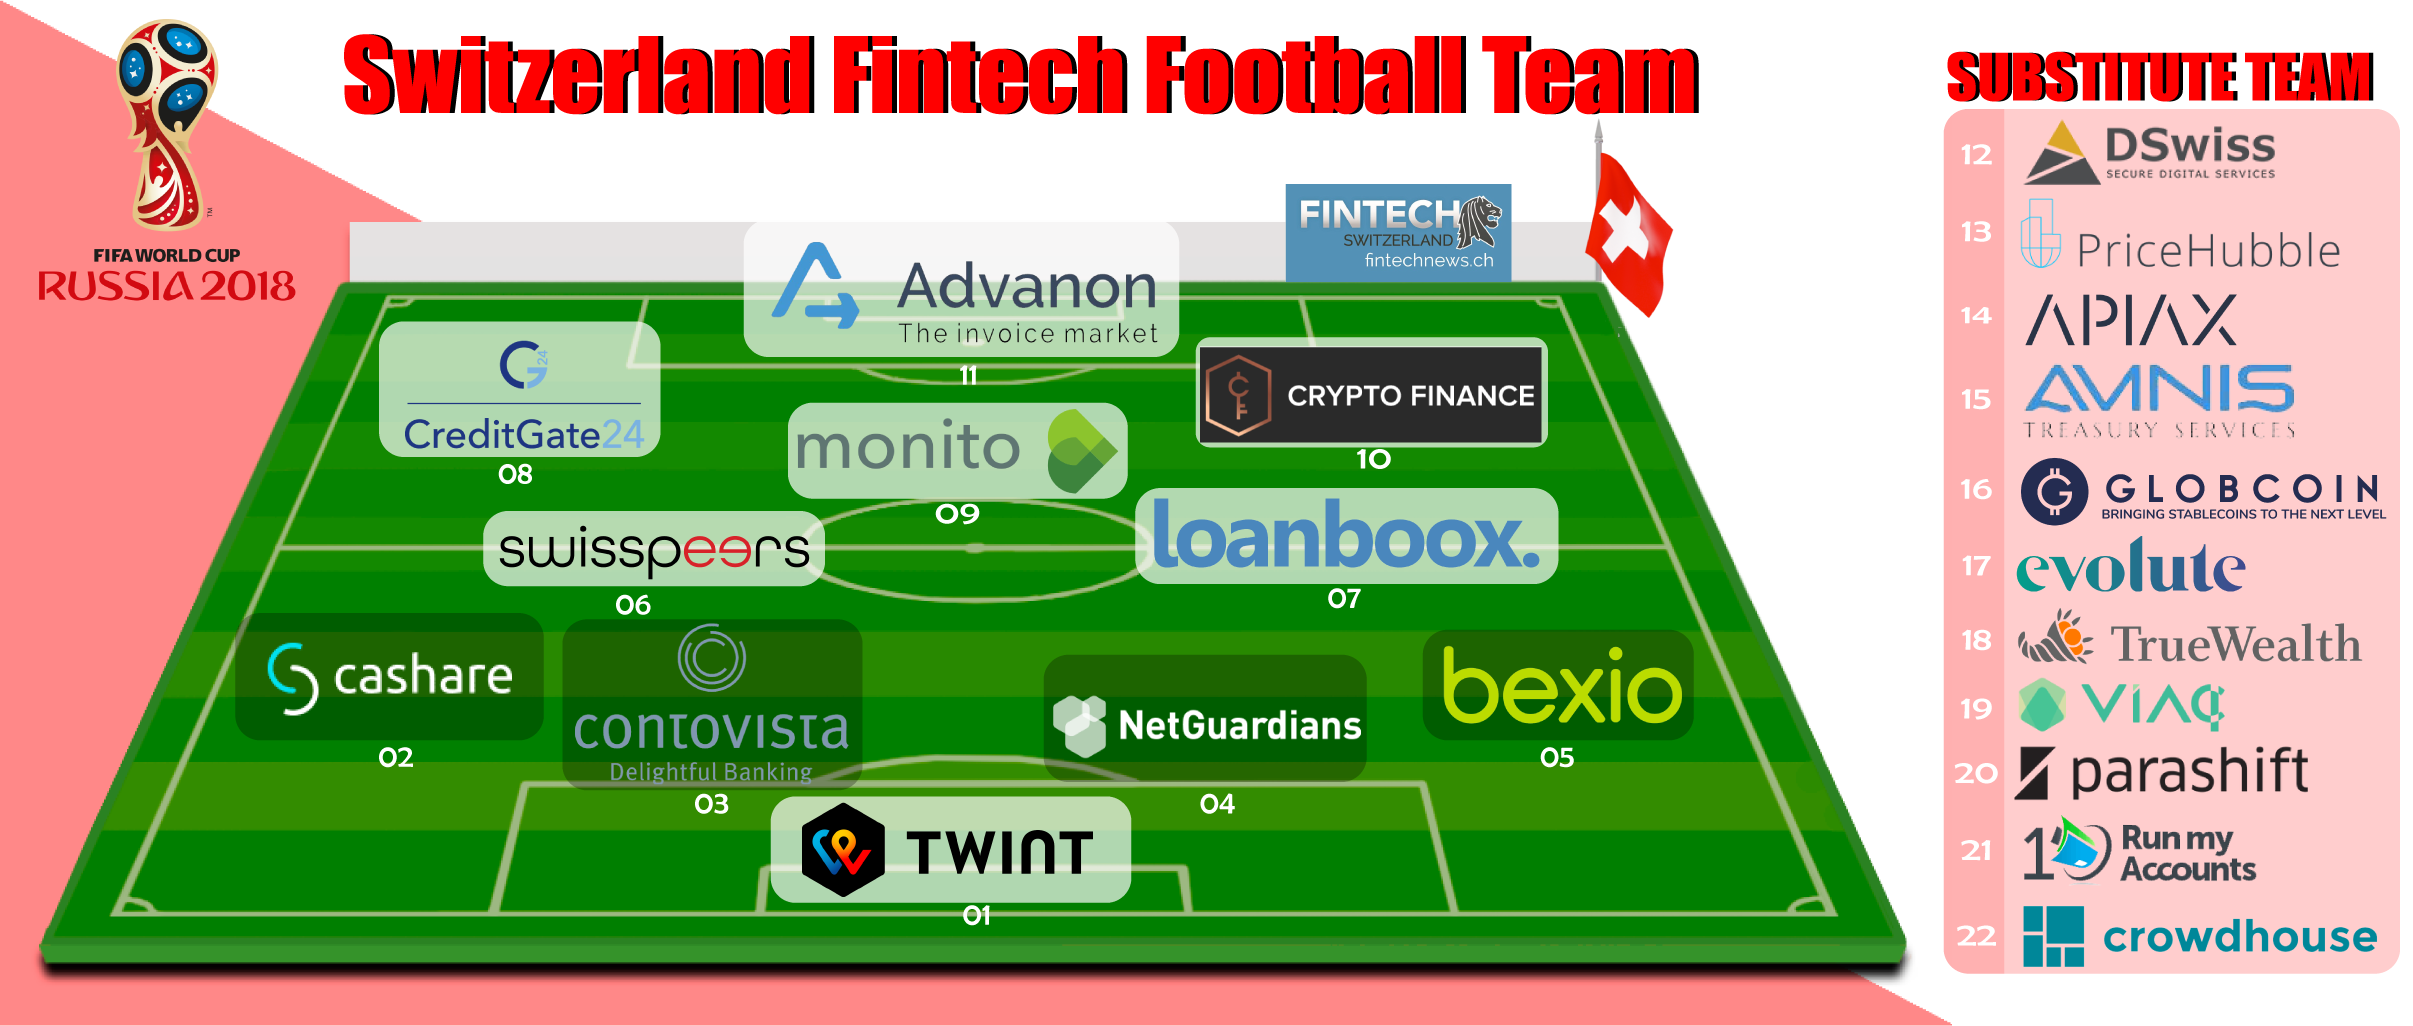 Football Team Swiss Fintech